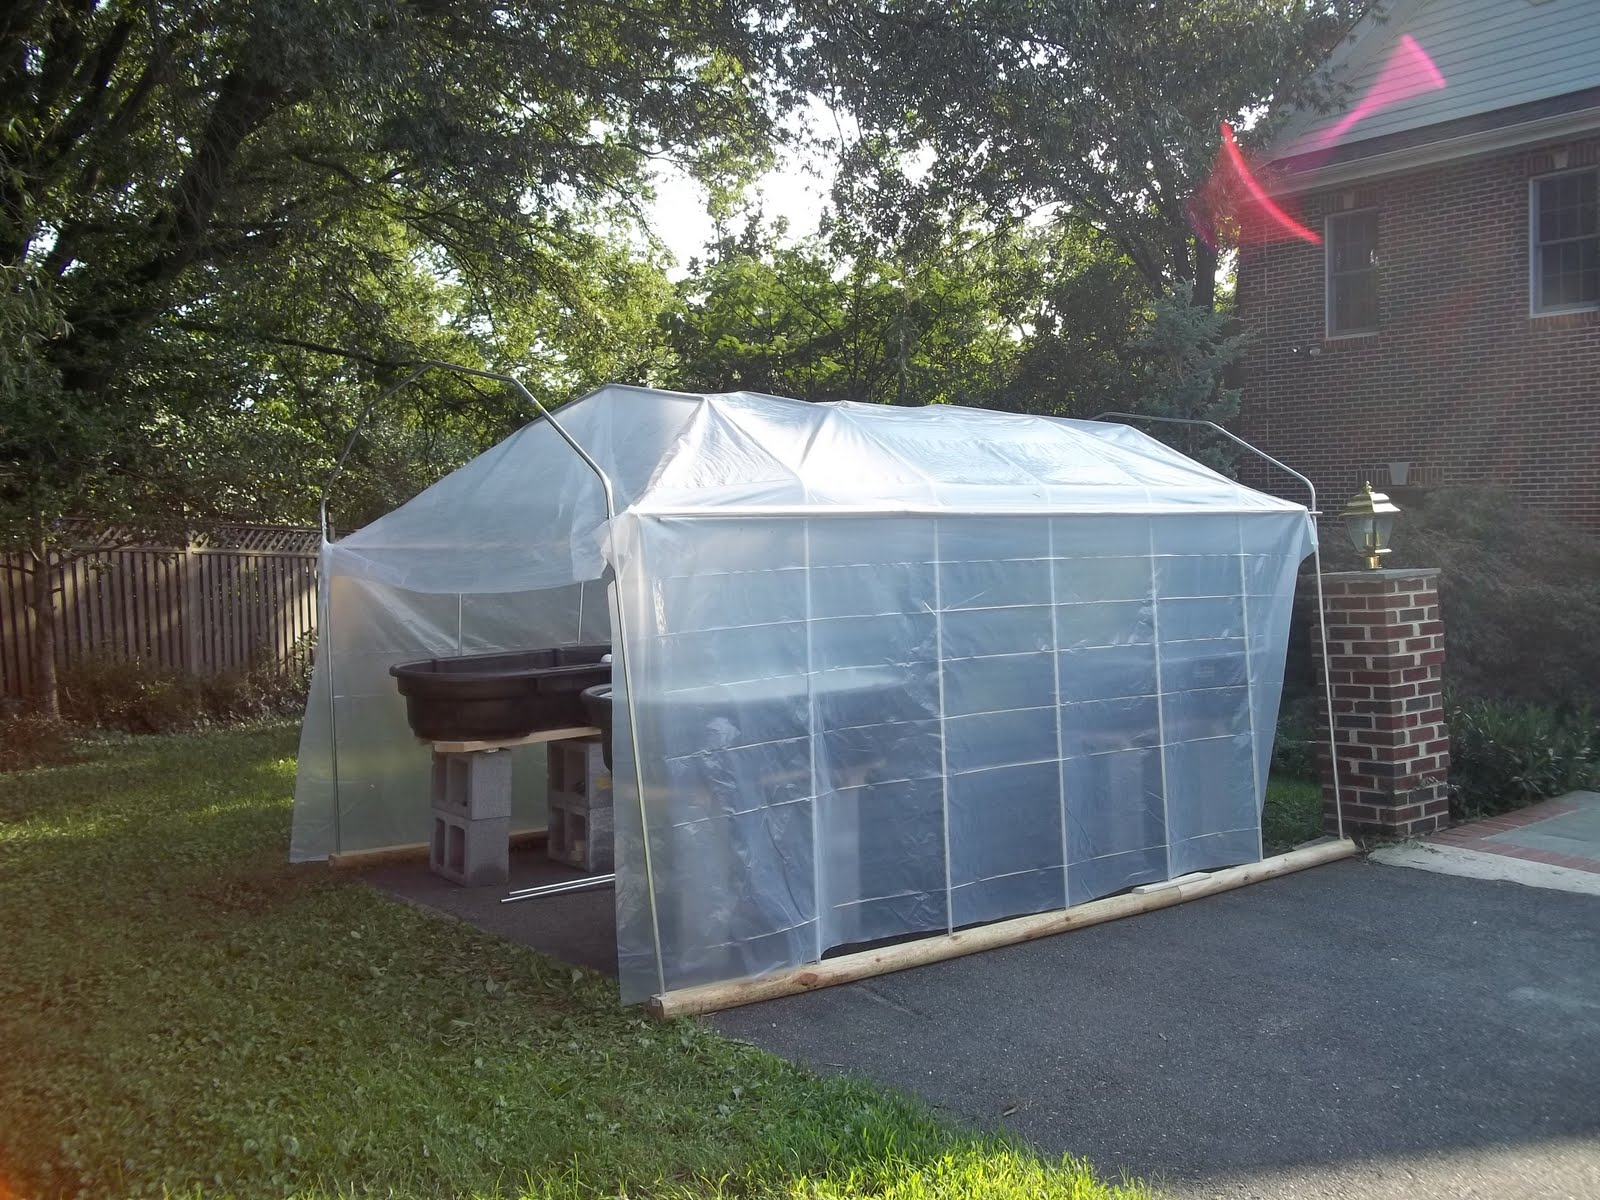 365 Aquaponics: 13 - Creating a Greenhouse out of Electric Metallic